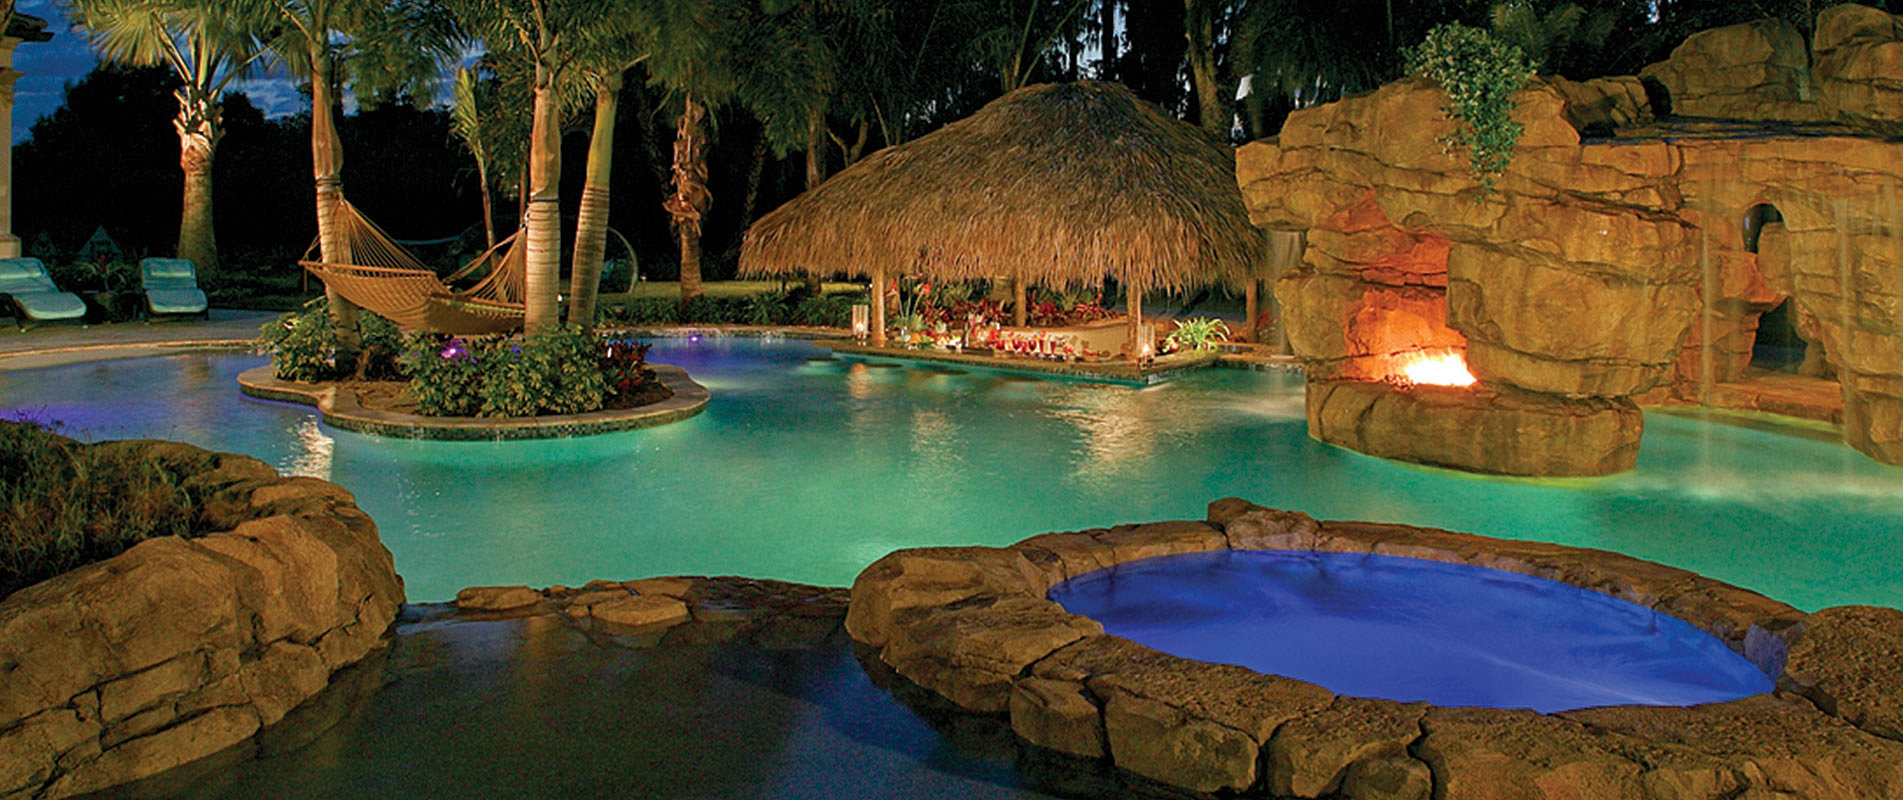 Custom luxury pools in central florida by southern pool for Pool design florida